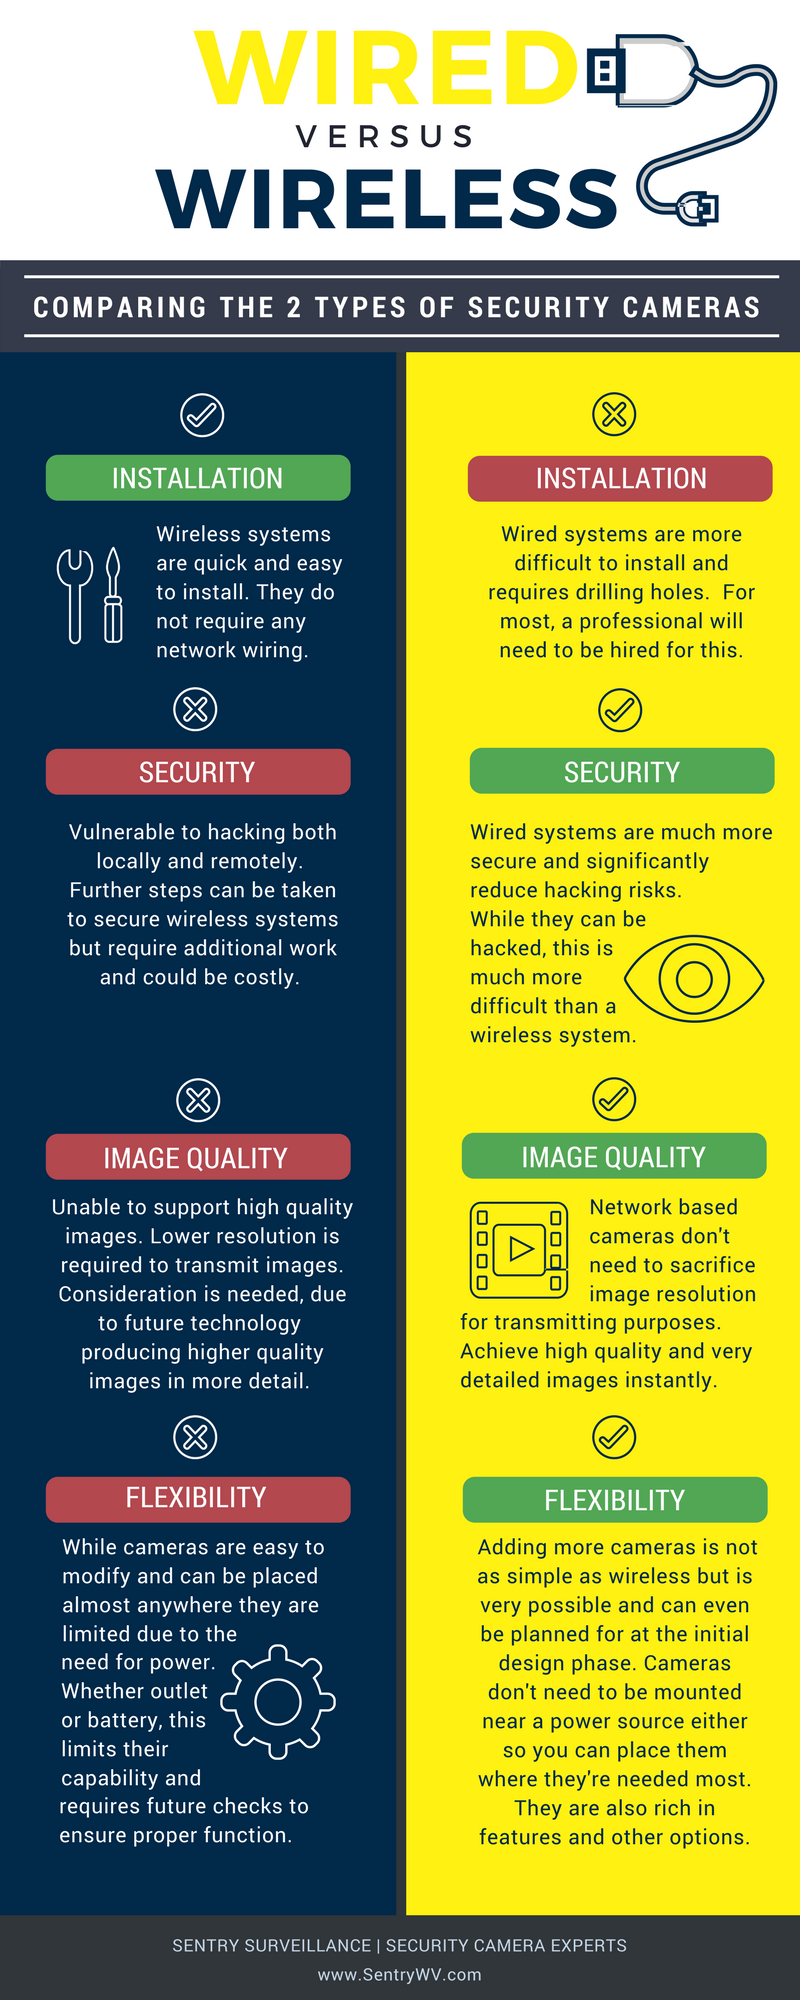 Wired Verses Wireless Security Cameras Infographic -  Comparing the 2 types of security cameras. Installation - Wireless systems are quick and easy to install. They do not require any network wiring. Wired systems are more difficult to install and requires drilling holes. For most a professional will need to be hired for this. Security - Wireless systems are vulnerable to hacking both locally and remotely. Further steps can be taken to secure wireless systems but require additional work and could be costly. Wired systems are much more secure and significantly reduce hacking risks. While they can be hacked, this is much more difficult than a wireless system. Image quality - Wireless systems are unable to support high quality images. Lower resolution is required to transmit images. Consideration is needed due to future technology producing higher quality images in more detail. Wired systems have network based cameras that don't need to sacrifice image resolution for transmitting purposes. Achieve high quality and very detailed images instantly. Flexibility - Wireless systems. While cameras are easy to modify and can be placed almost anywhere they are limited due to the need for power. Whether outlet or battery, this limits their capability and requires future checks to ensure proper function. Wired systems. Adding more cameras is not as simple as wireless but is very possible and can even be planned for at the initial design phase. Cameras don't need to be mounted near a power source either so you can place them where they're needed most. They are also rich in features and other options.